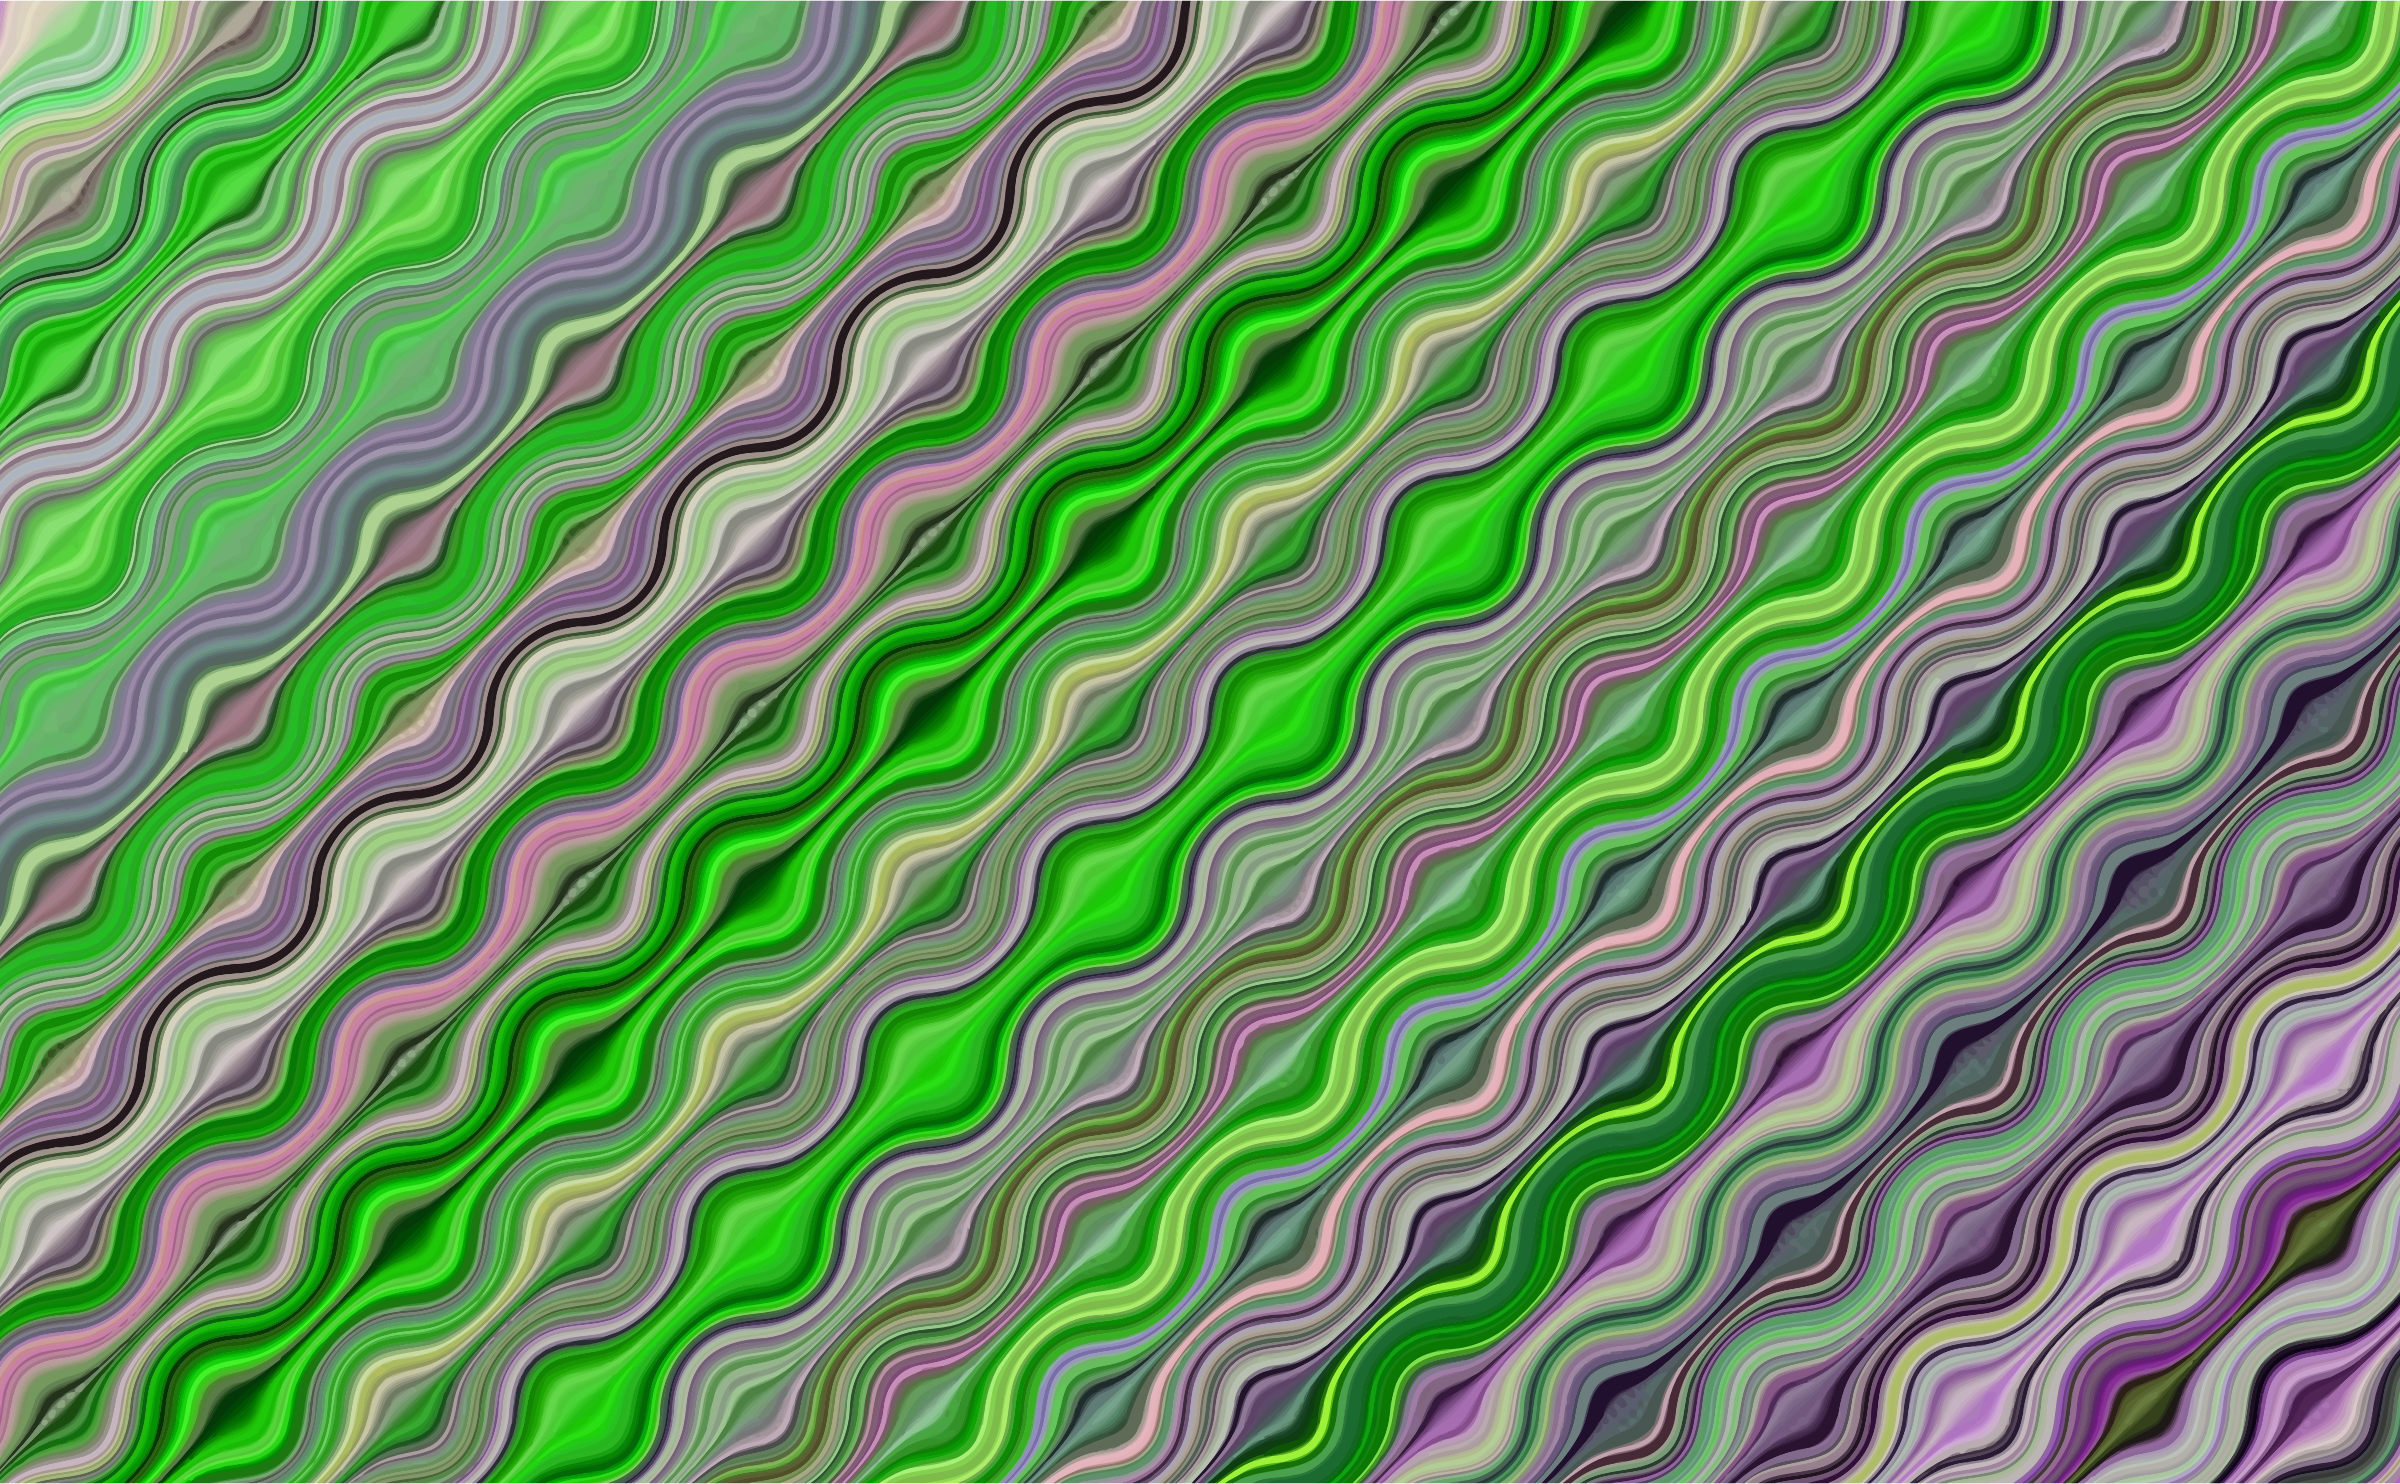 Background pattern 216 (colour 2) by Firkin